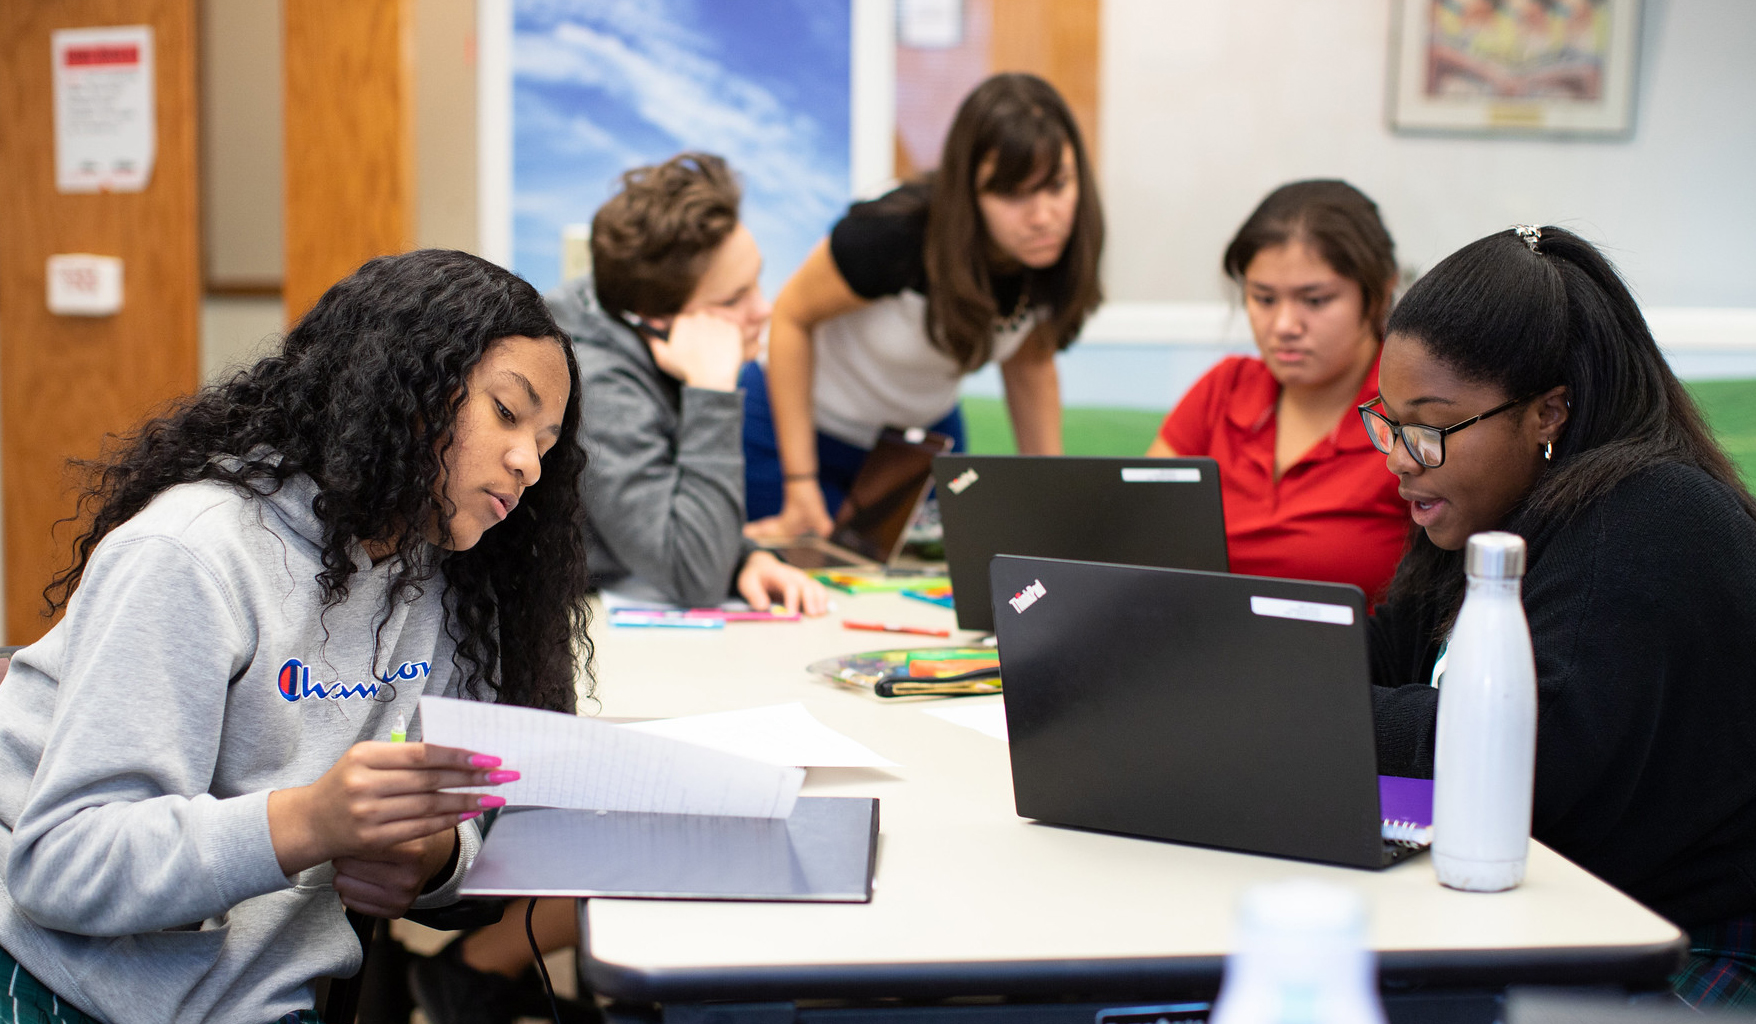 High school students at The Ellis School, an all-girls private school in Pittsburgh, study together.